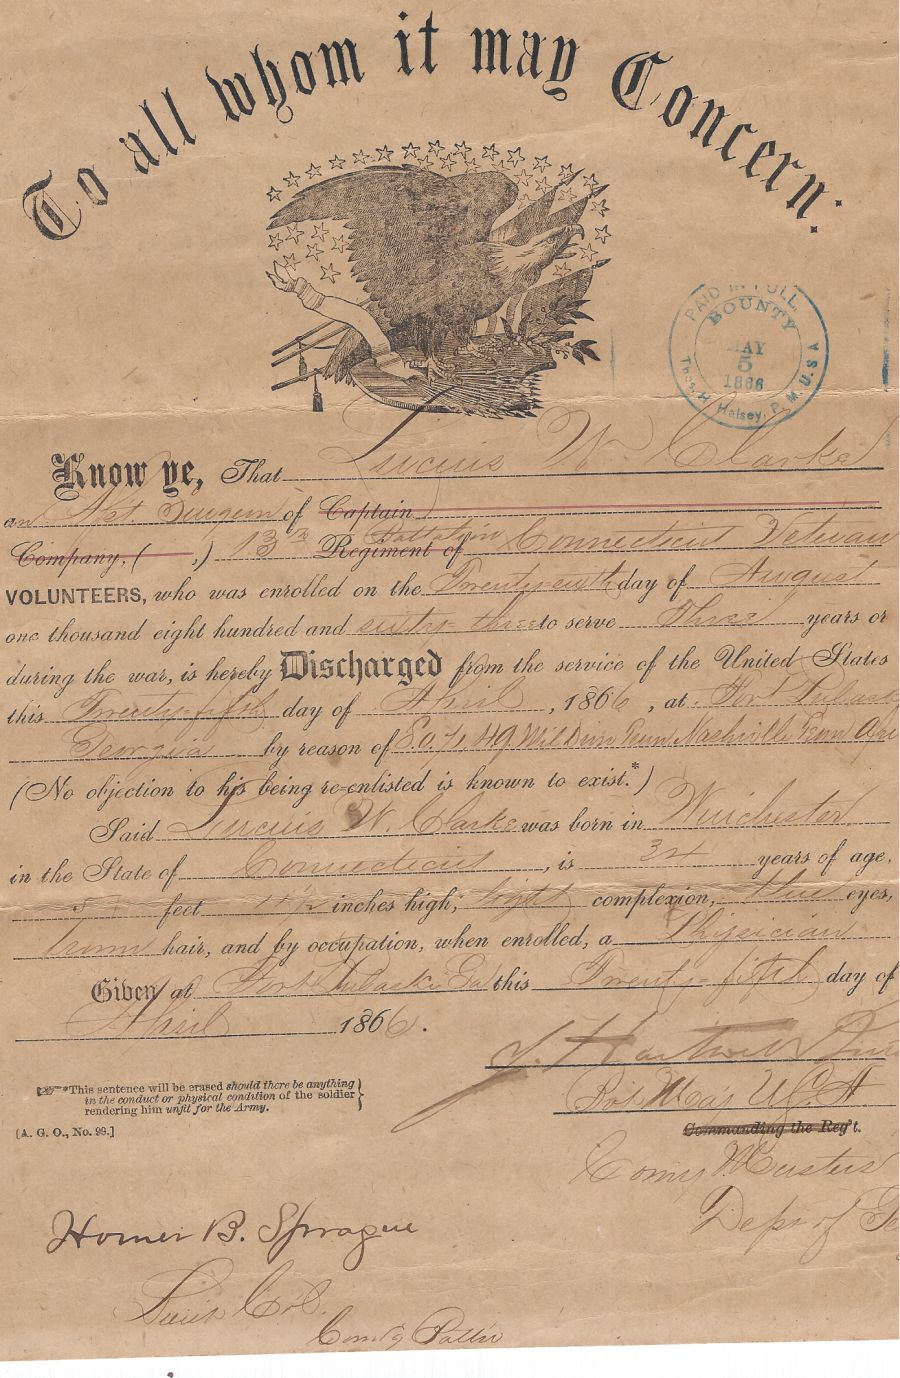 civil war surgeon discharge papers